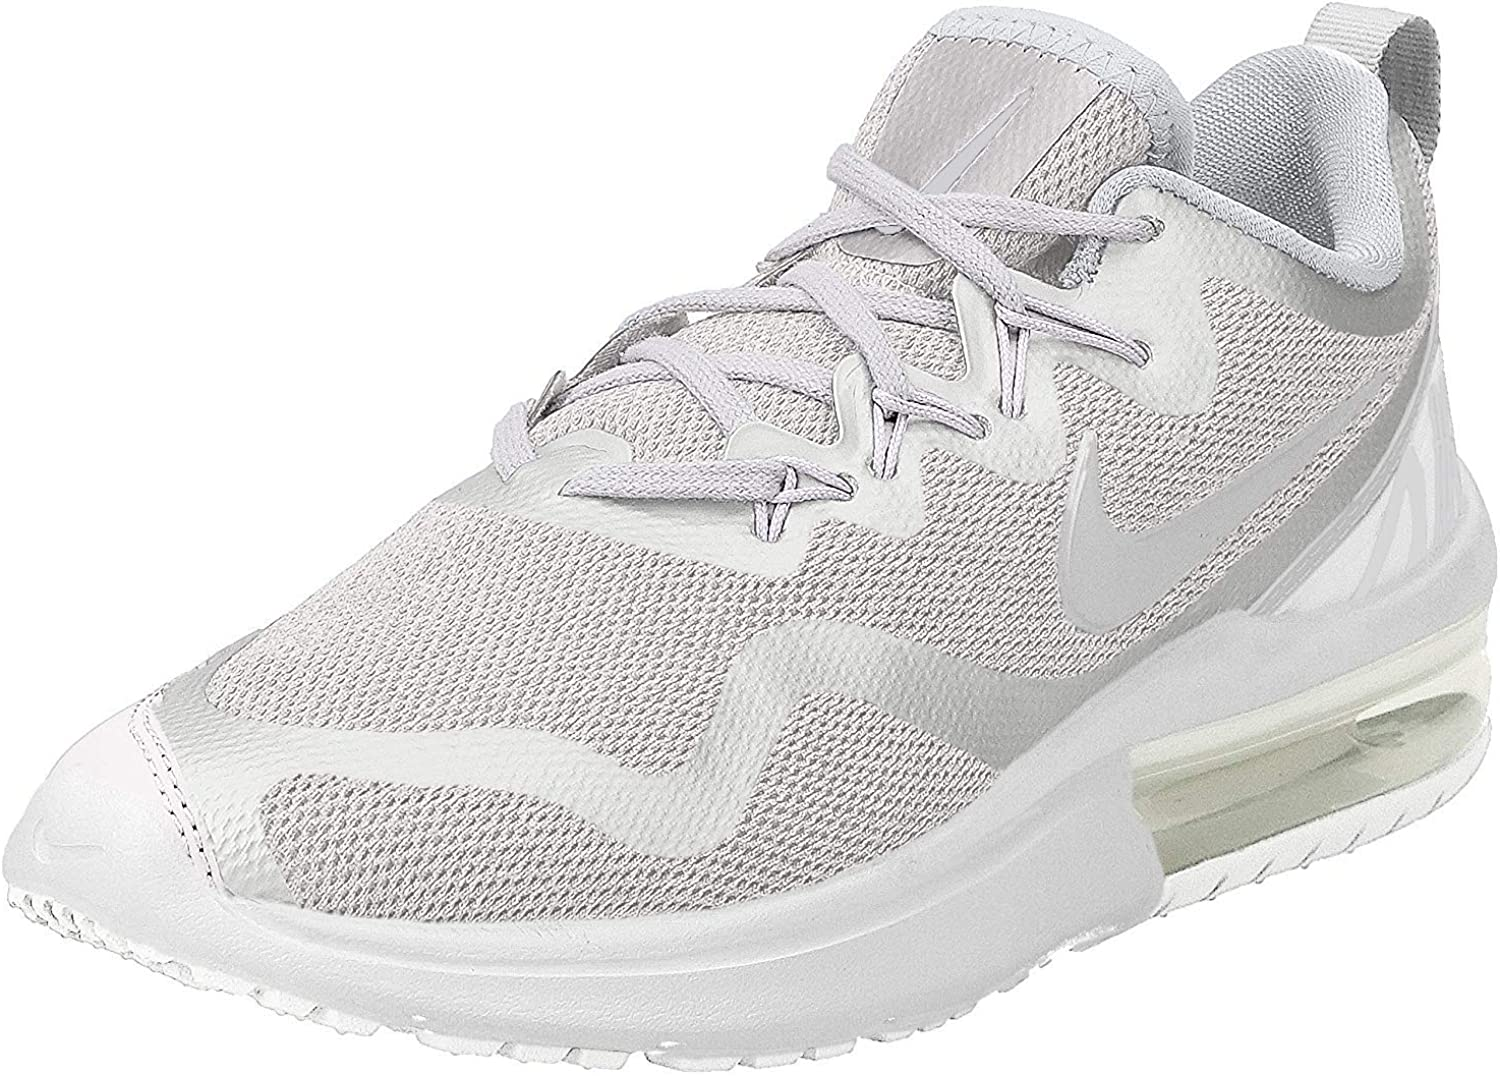 Nike Men\'s Sneakers Air Max Fury Running Shoes (11 D(M) US, White/Pure Platinum) 81gZpQyvwJLUL1500_